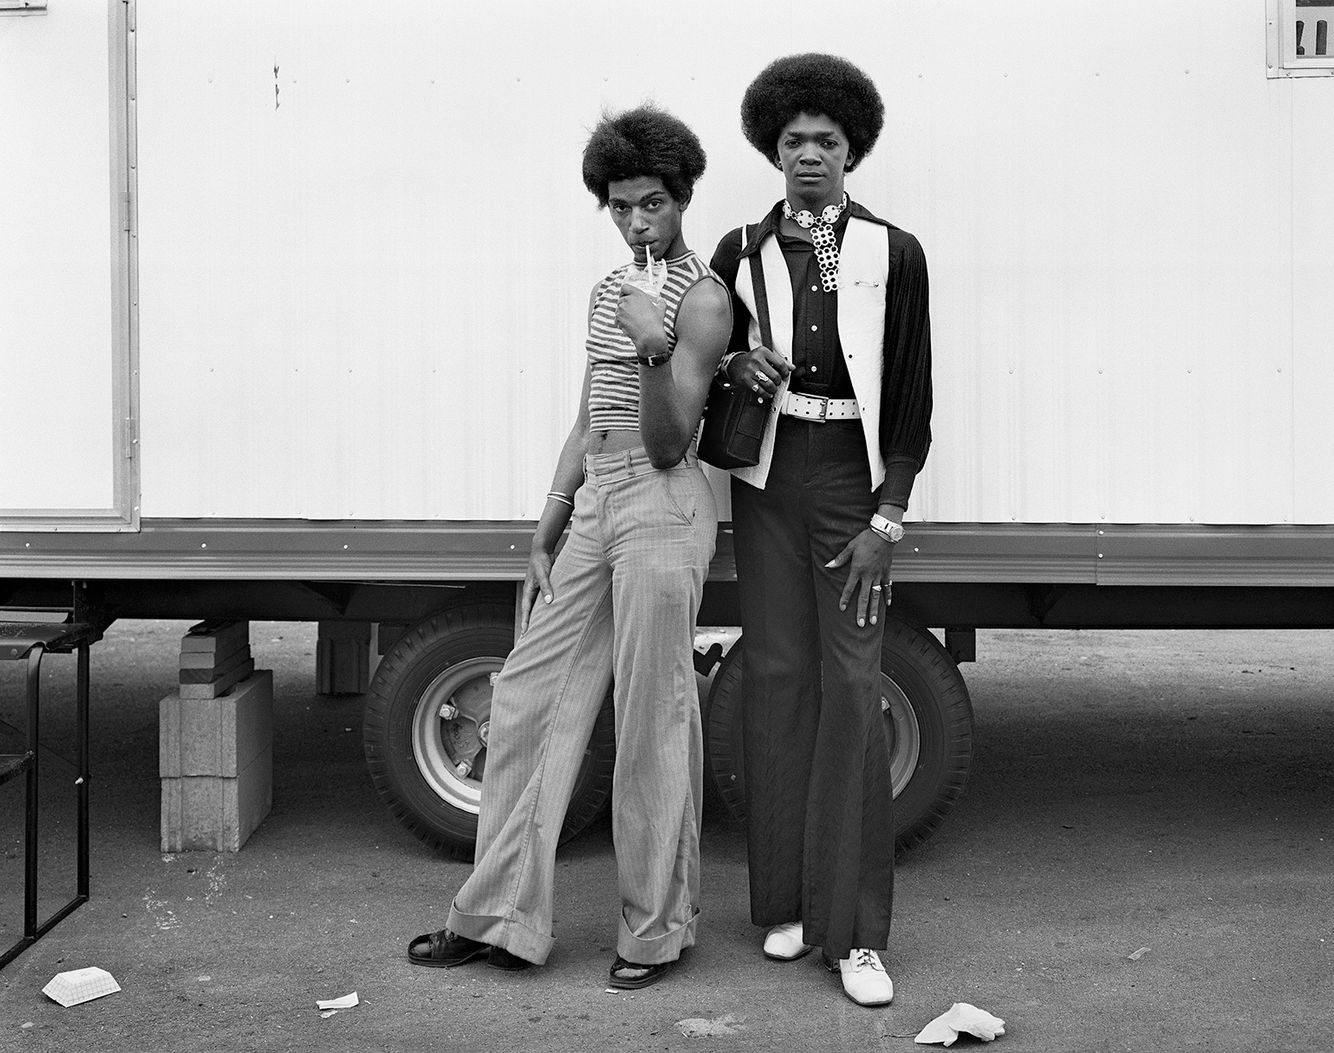 Two Gay Libbers, Detroit, 23 May 1973